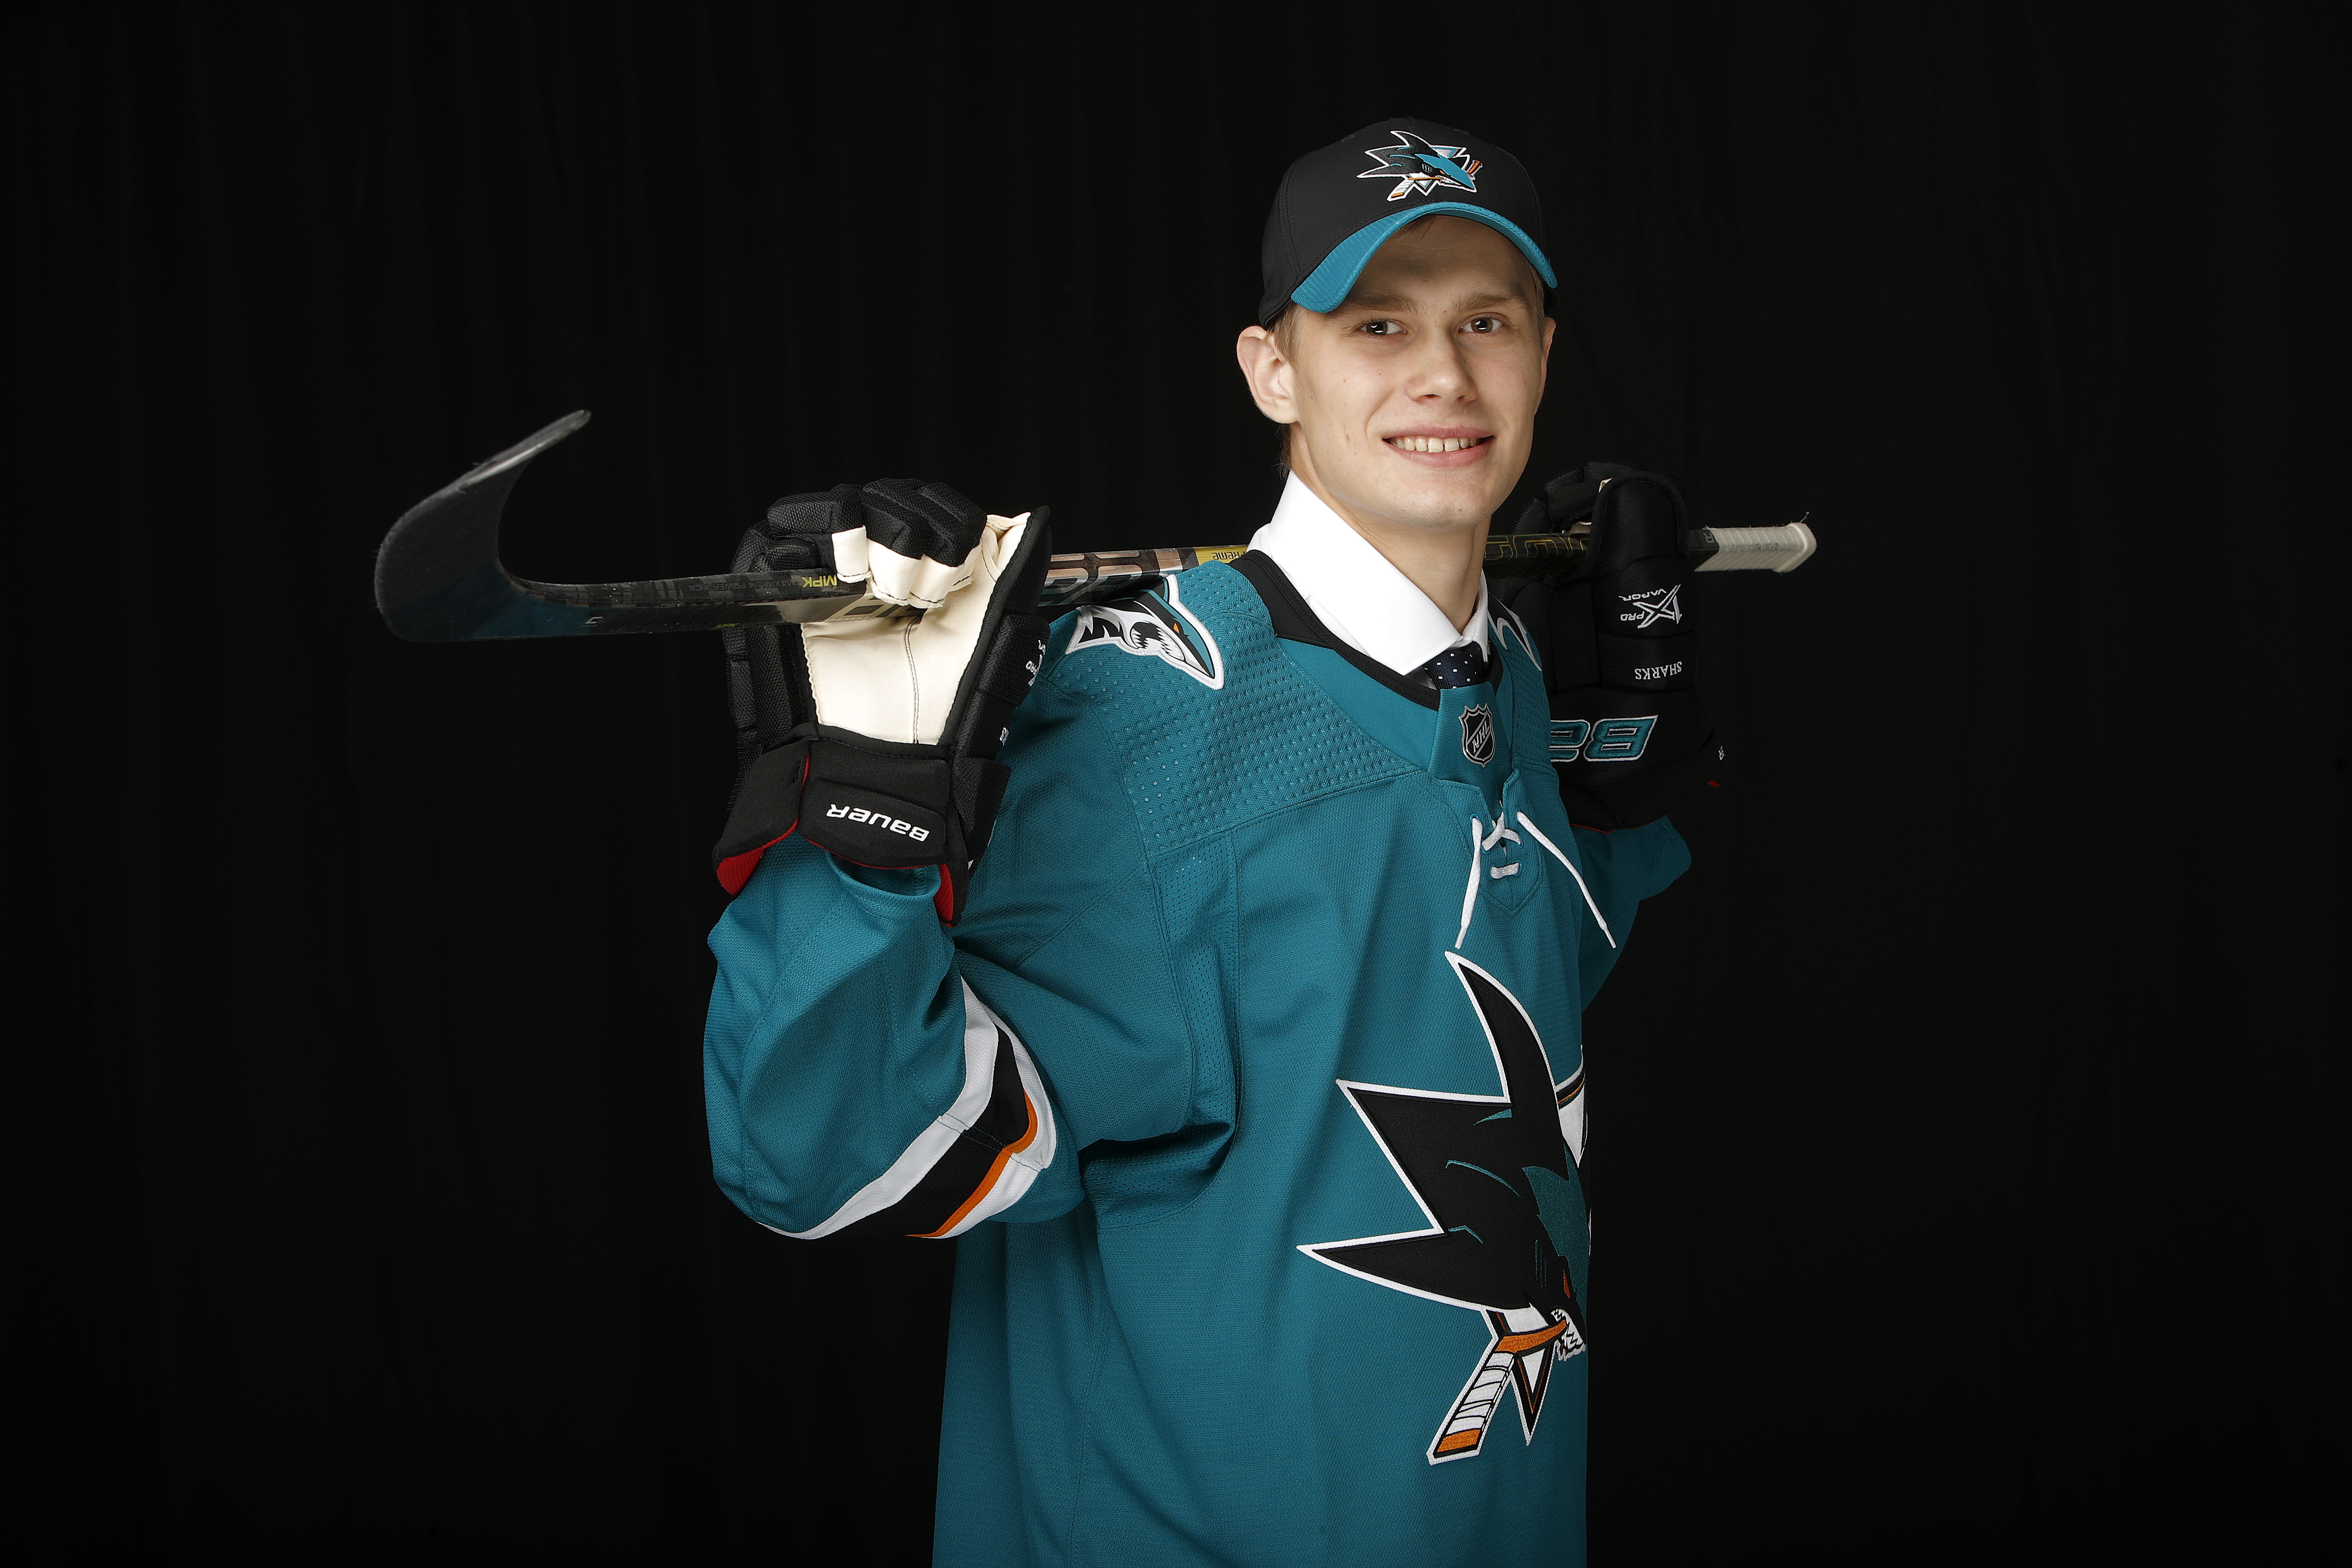 VANCOUVER, BRITISH COLUMBIA - JUNE 22: Yegor Spiridonov poses after being selected 108th overall by the San Jose Sharks during the 2019 NHL Draft at Rogers Arena on June 22, 2019 in Vancouver, Canada.